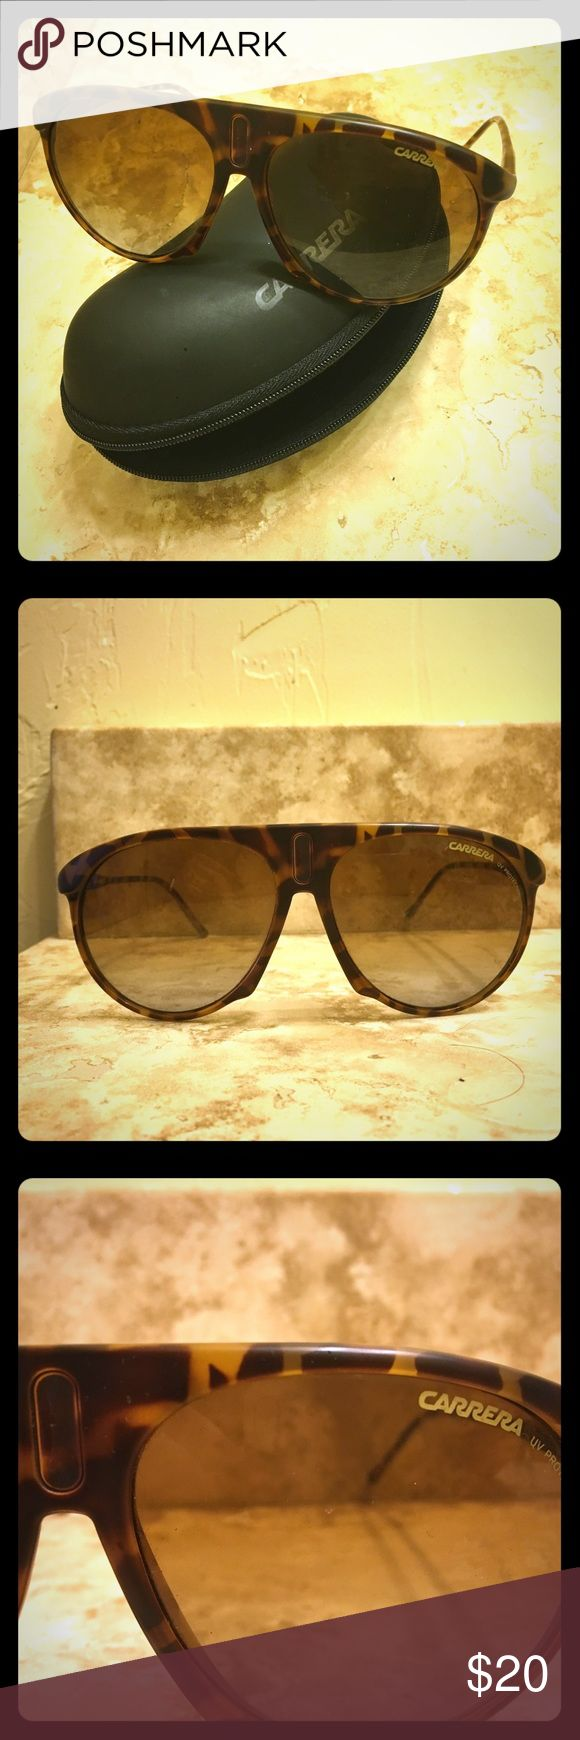 Authentic unisex Carrera sunglasses with case Authentic unisex Carrera sunglasses in tortoiseshell. Large frames, tortoiseshell pattern. The Carrera decal has fallen off of the bridge (above nose - see photos). Otherwise great shape. Comes with original case. Carrera Accessories Sunglasses